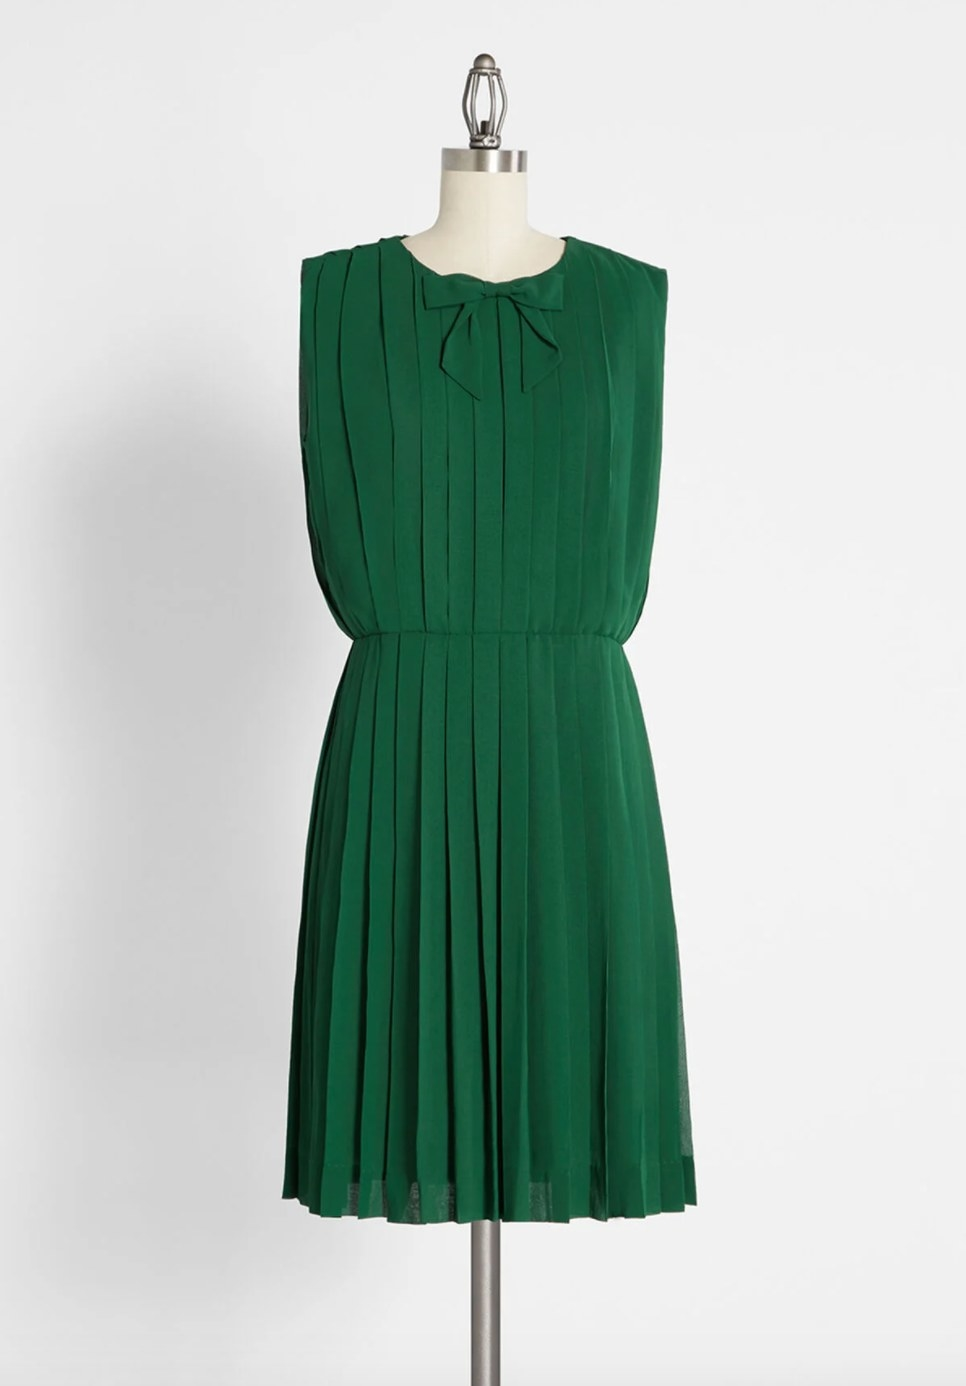 The pleated dress in green